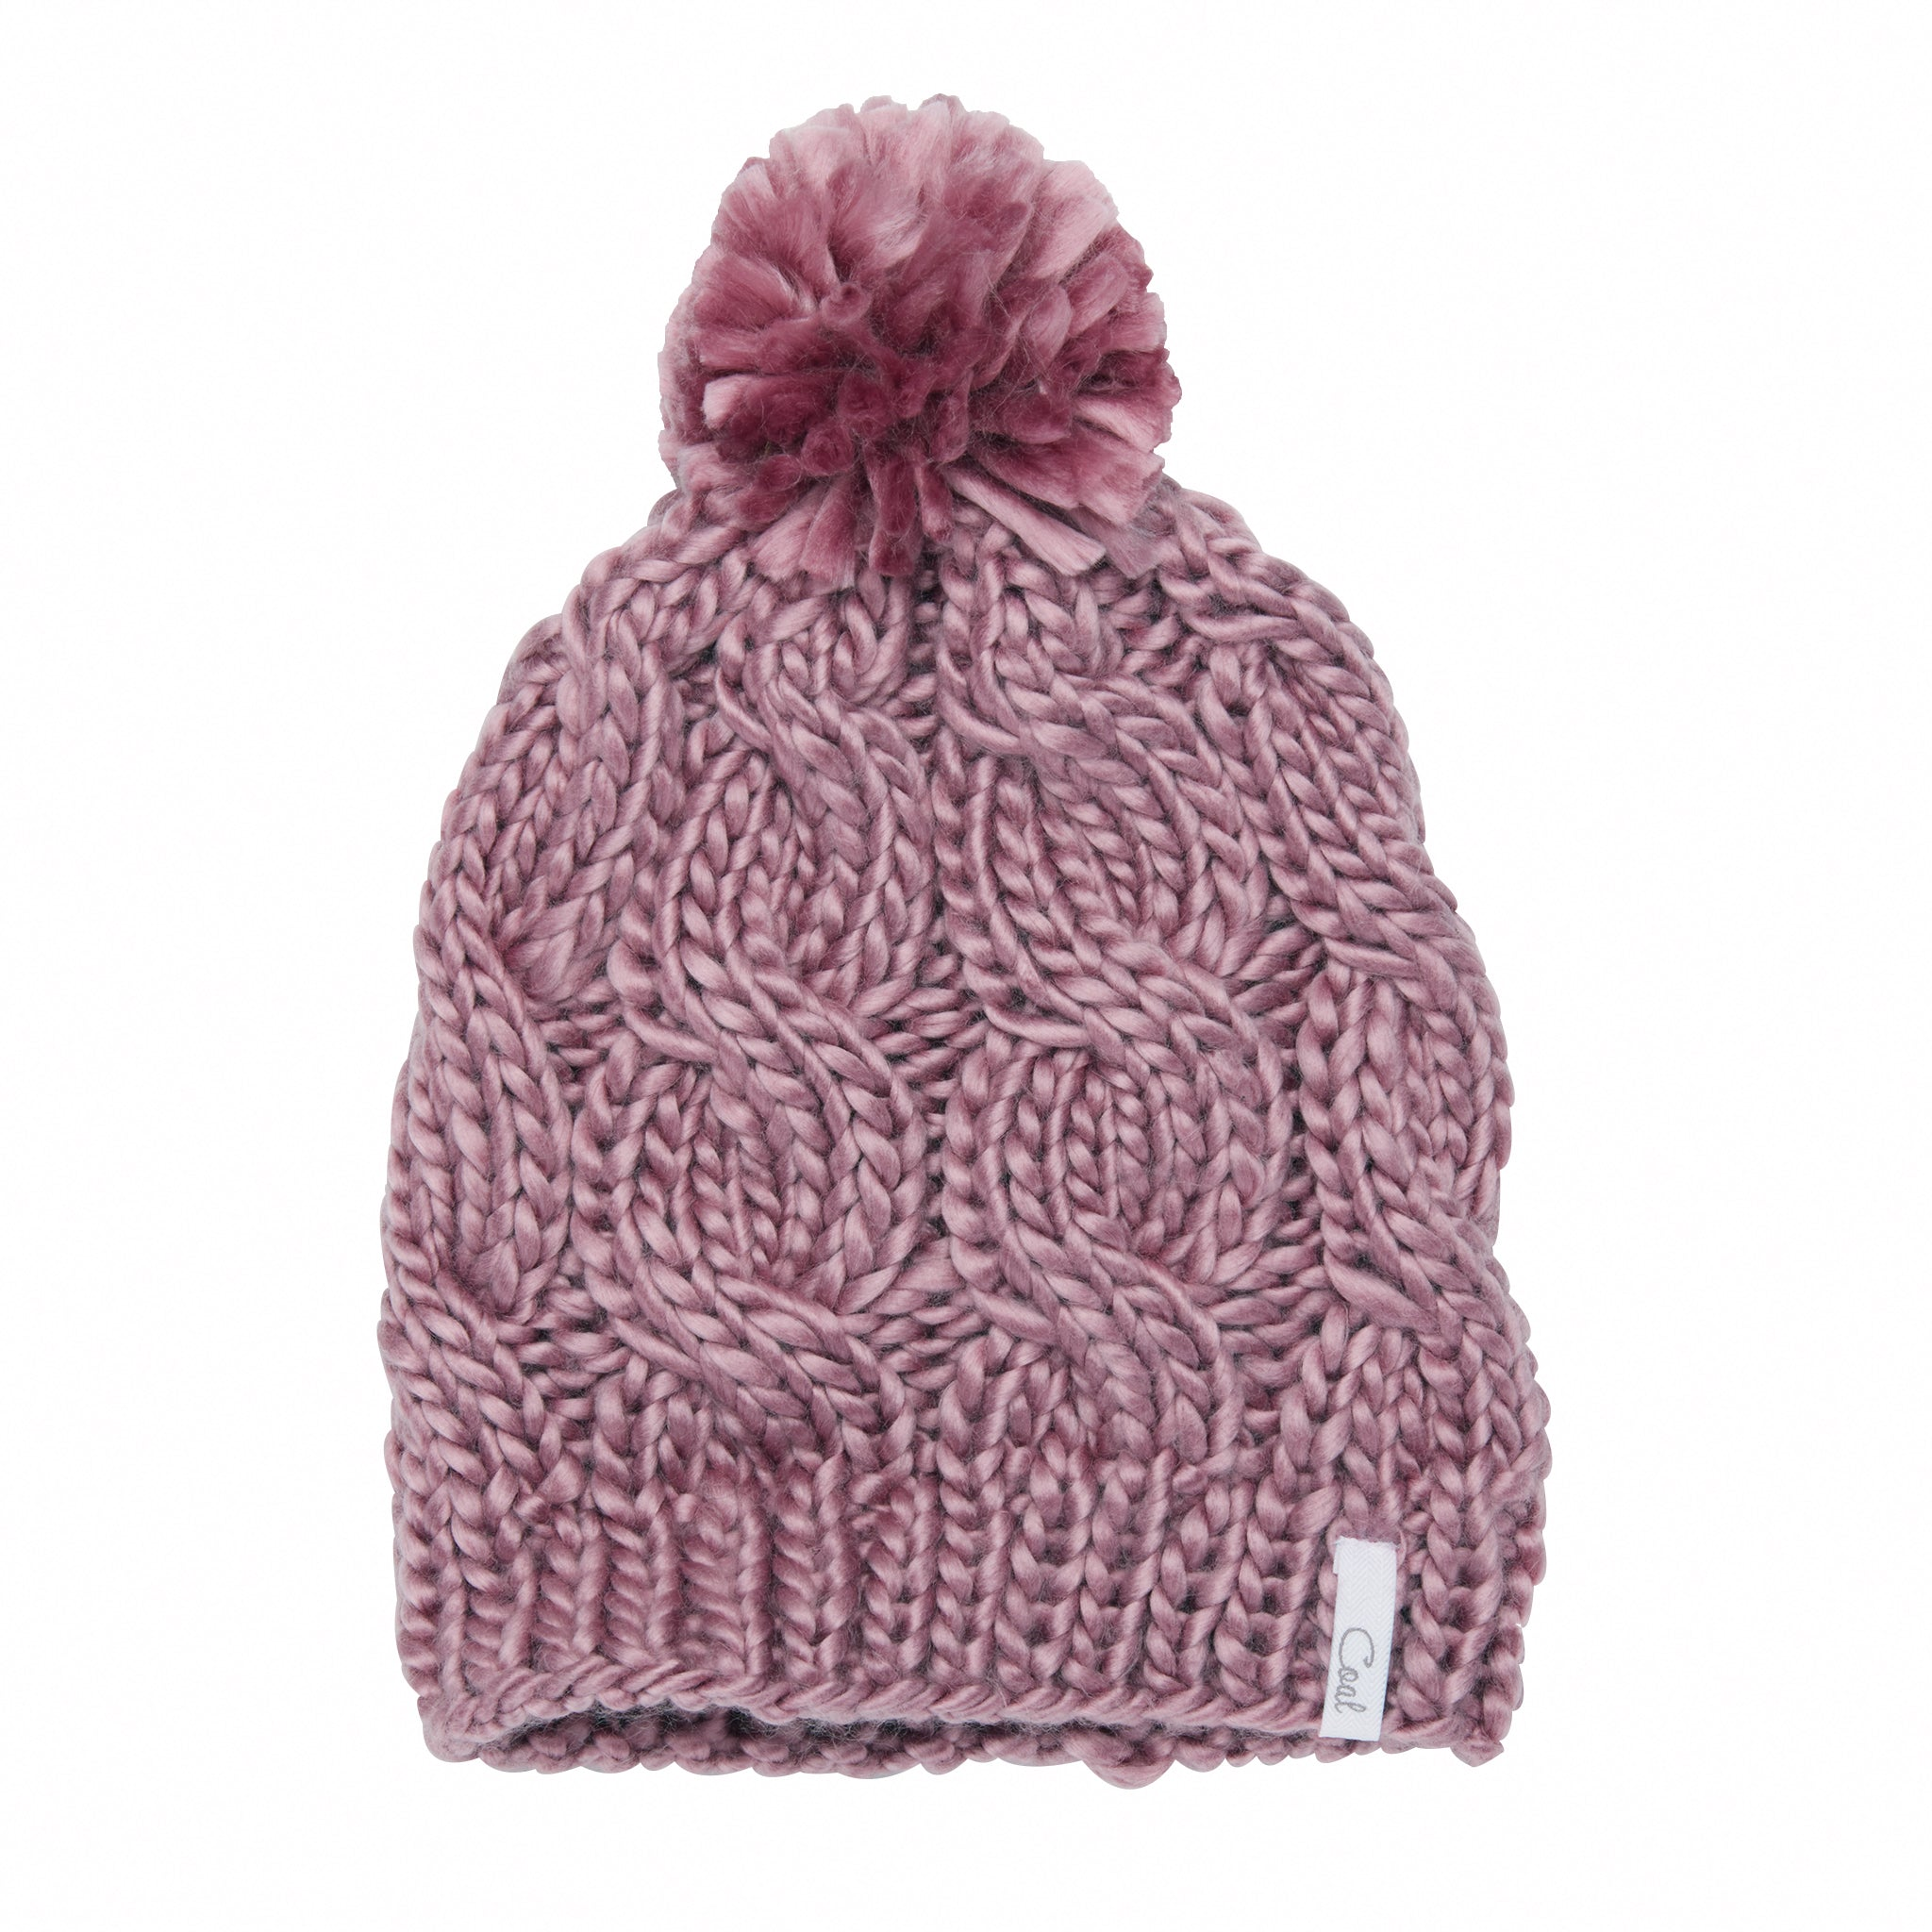 Wool Hat with Pom Ready to Ship Pom Pom Hat Winter Knitted Hats for Women Wool Cable Knitted Hat Blue Beanie